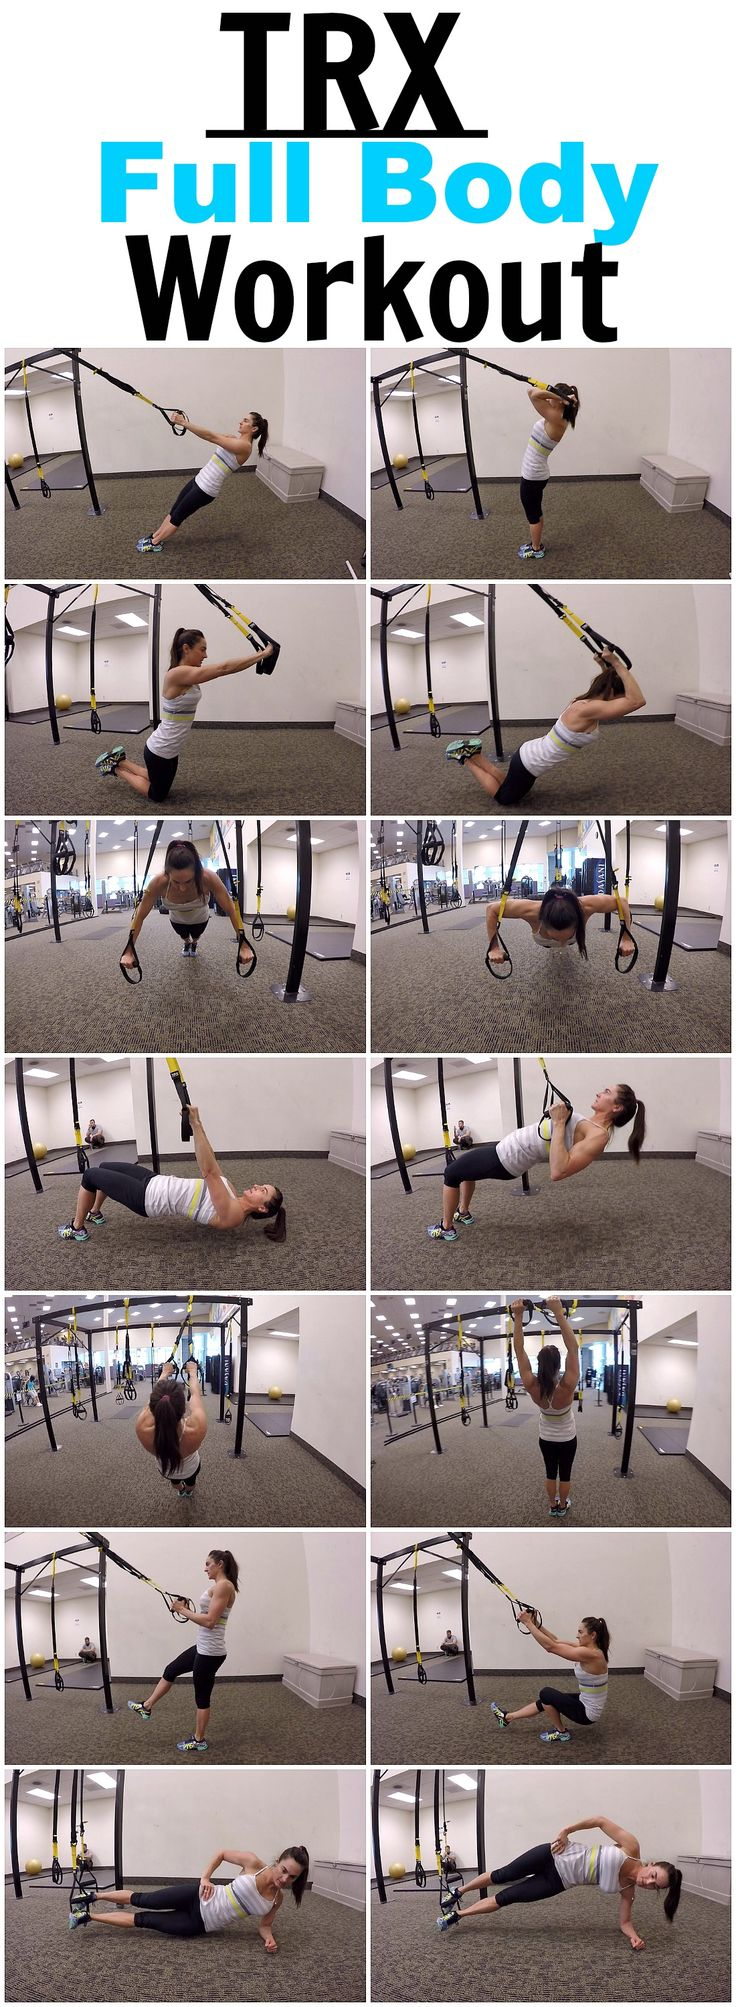 7 Exercises for a full body TRX workout! - http://www.amazon.co.uk/dp/B00RLH0M6C